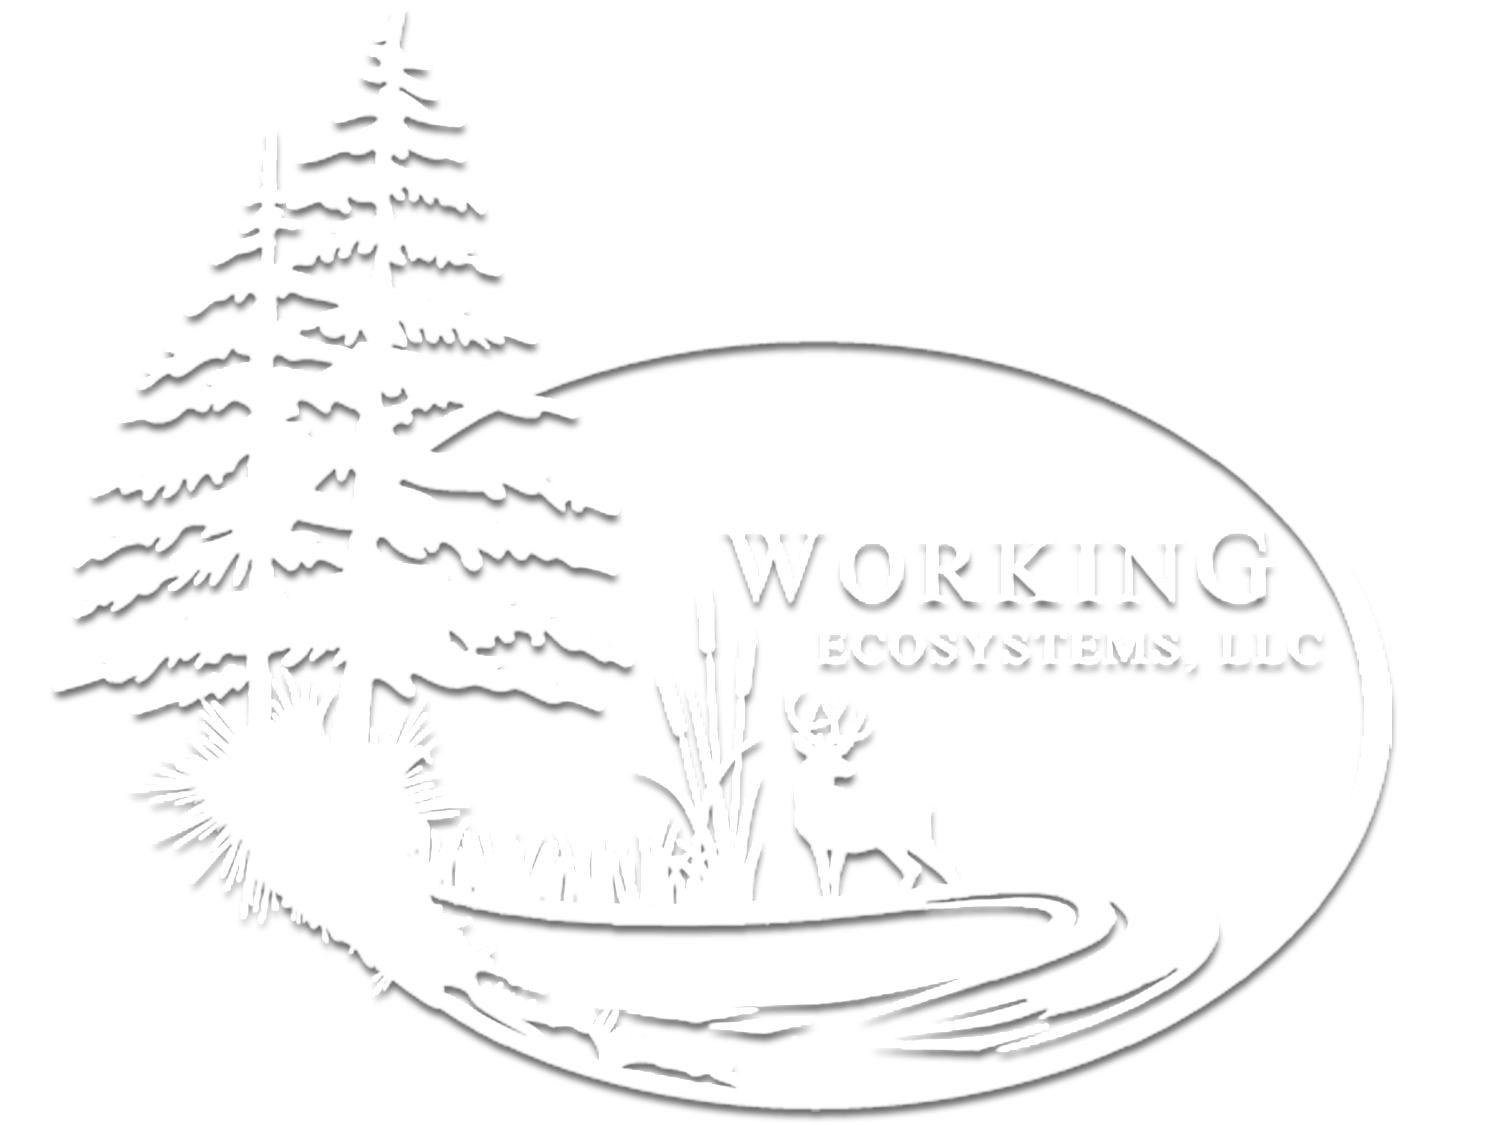 Weeds drawing money. Noxious working ecosystems llc